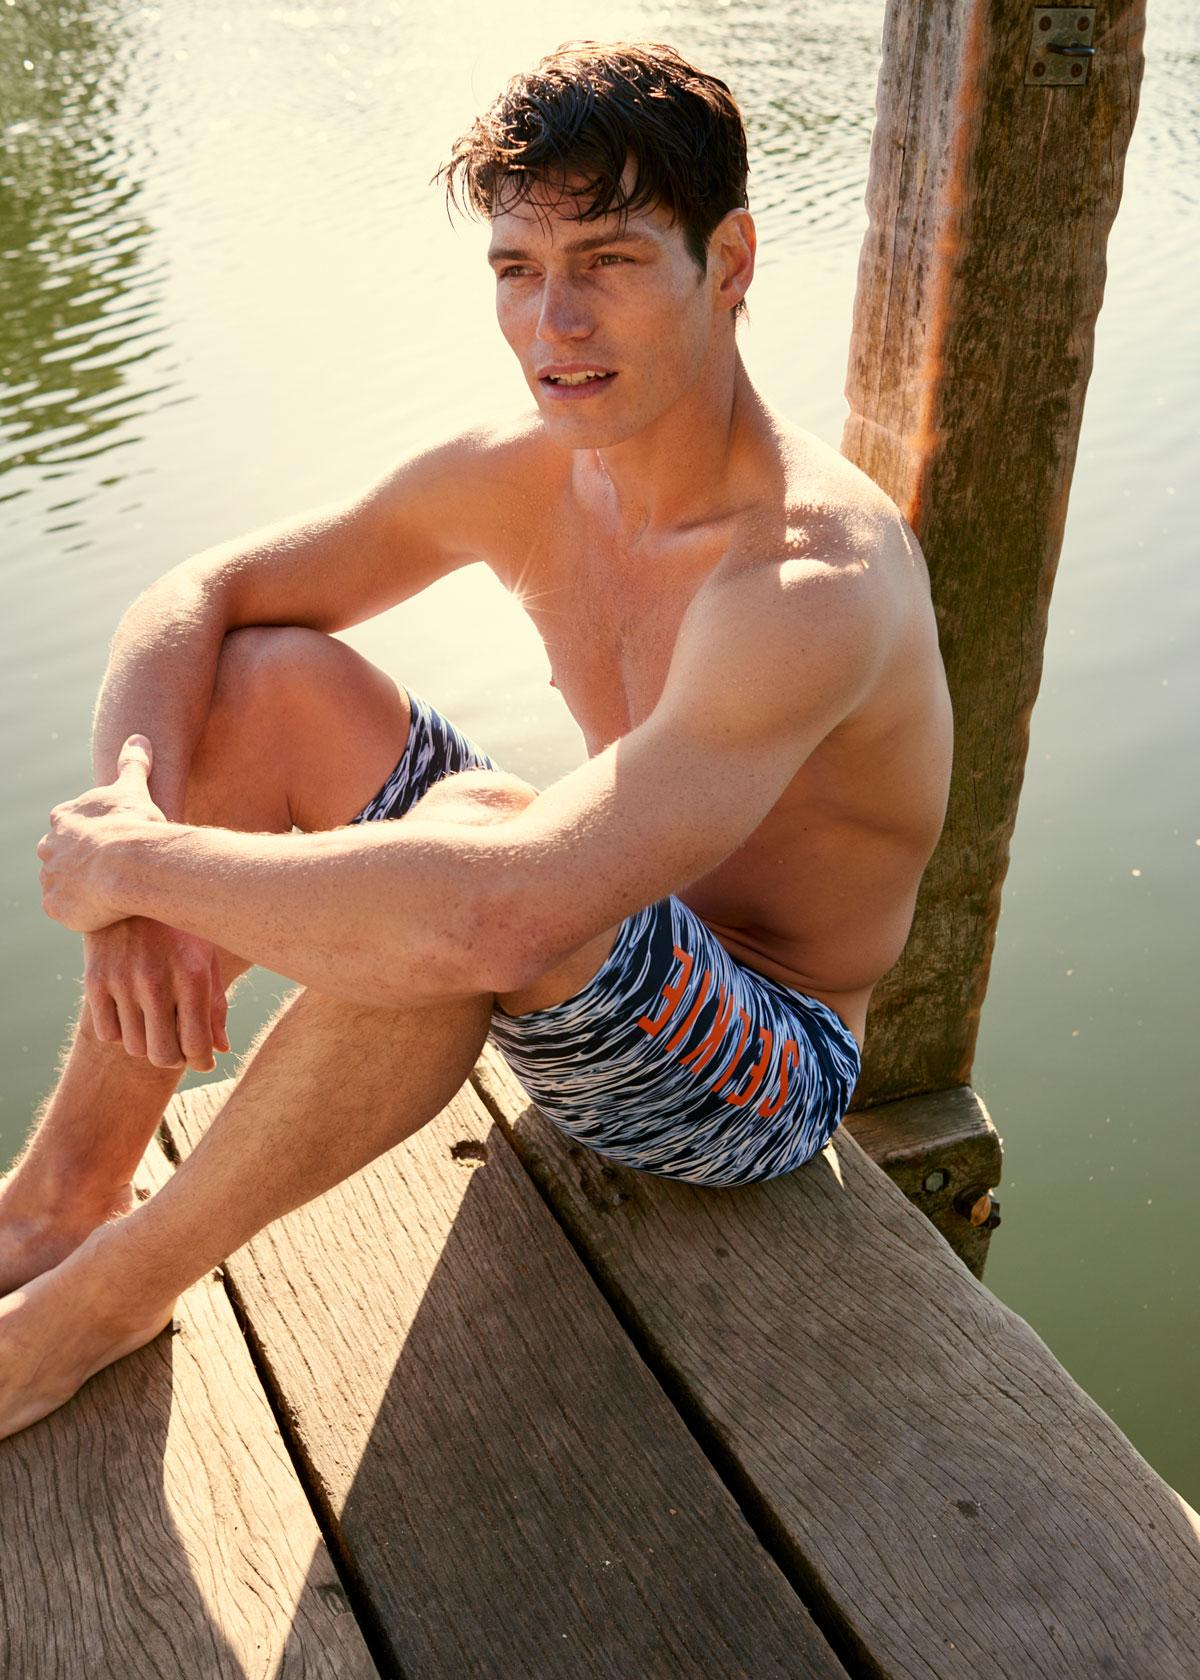 Selkie Swim Co has announced that it has engaged the 'Wild Swimming Brothers' as brand ambassadors.